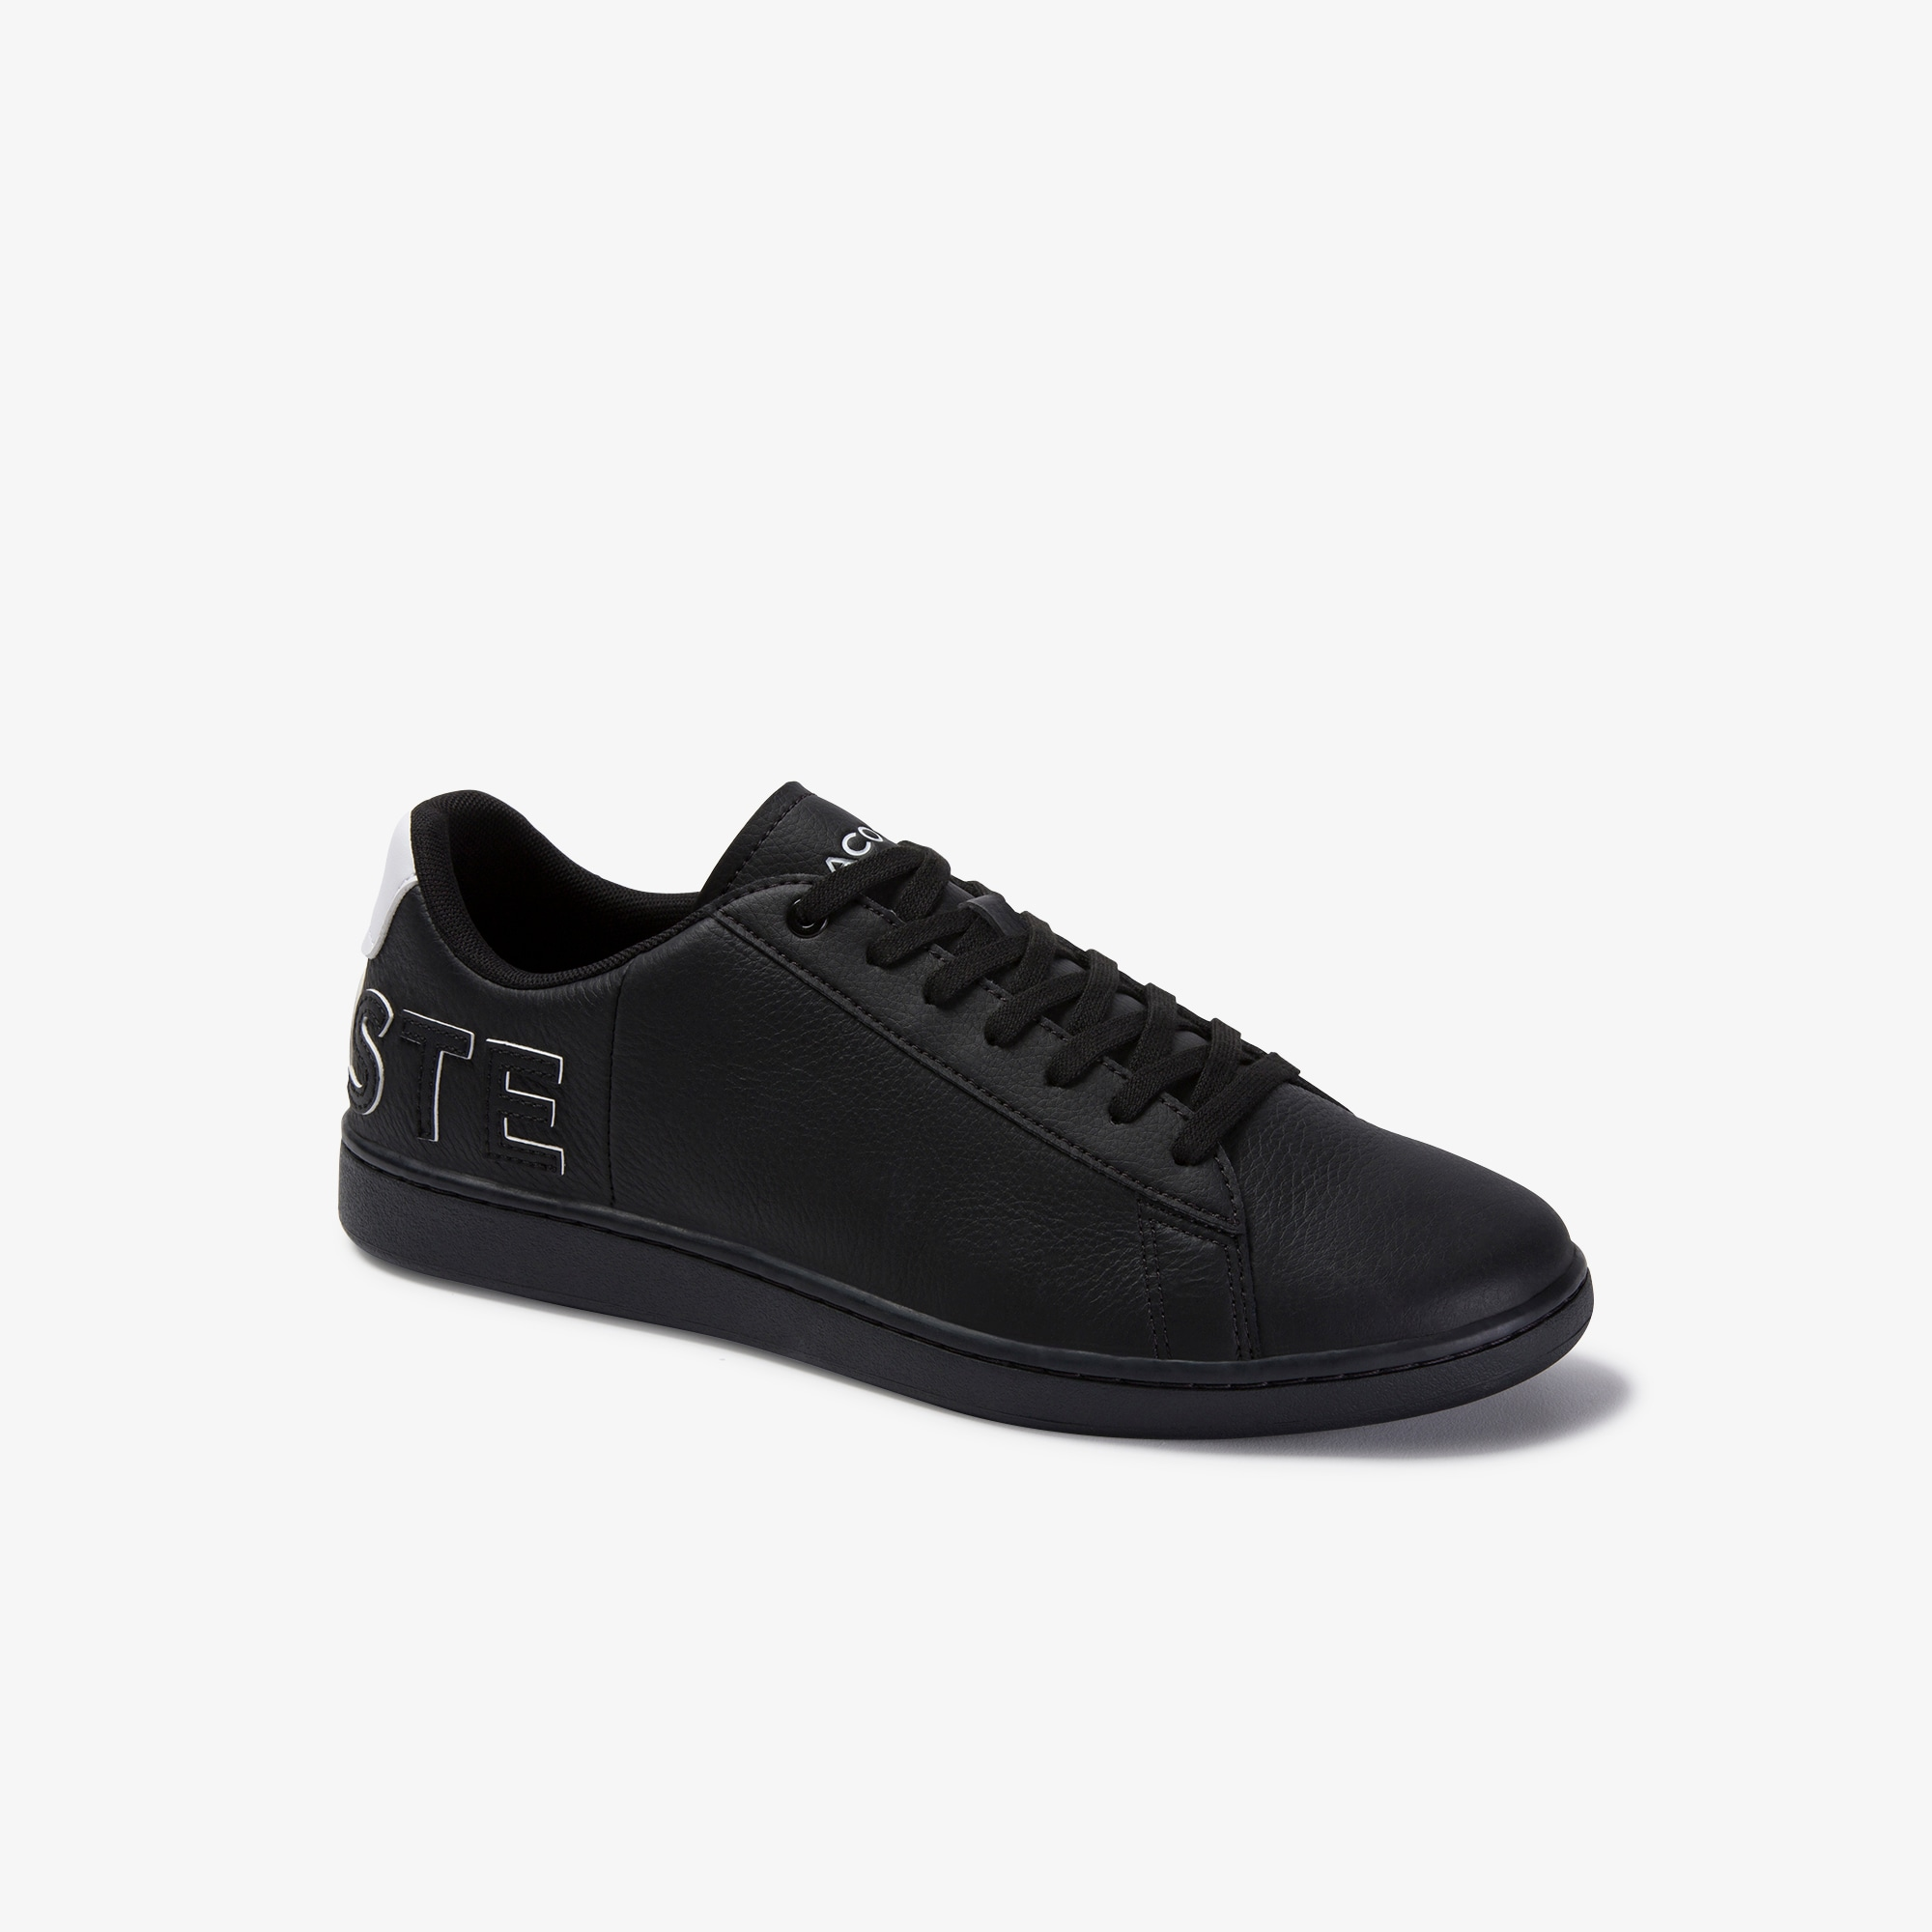 Men's Carnaby Evo color-pop Leather Sneakers